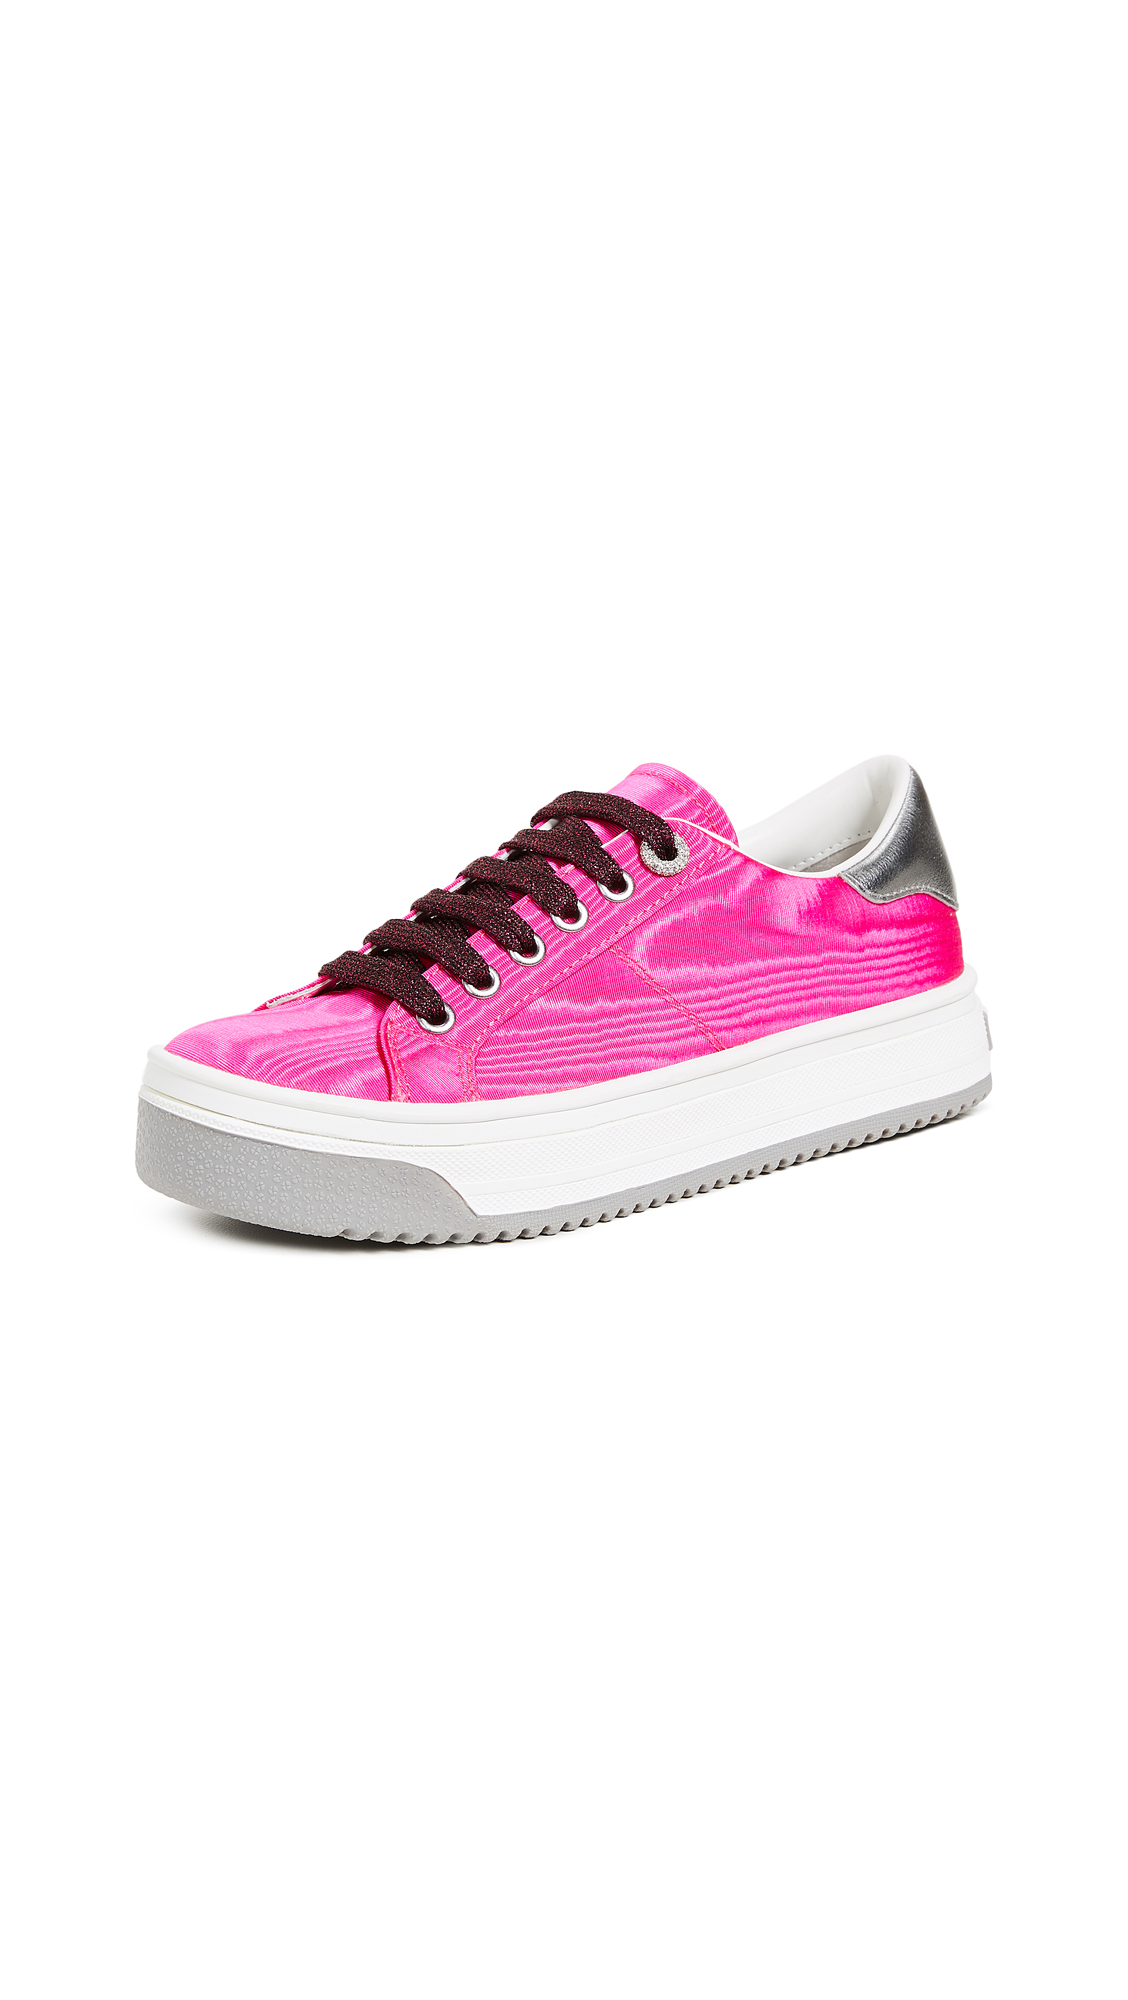 Marc Jacobs Empire Multi Color Sole Sneakers - Magenta